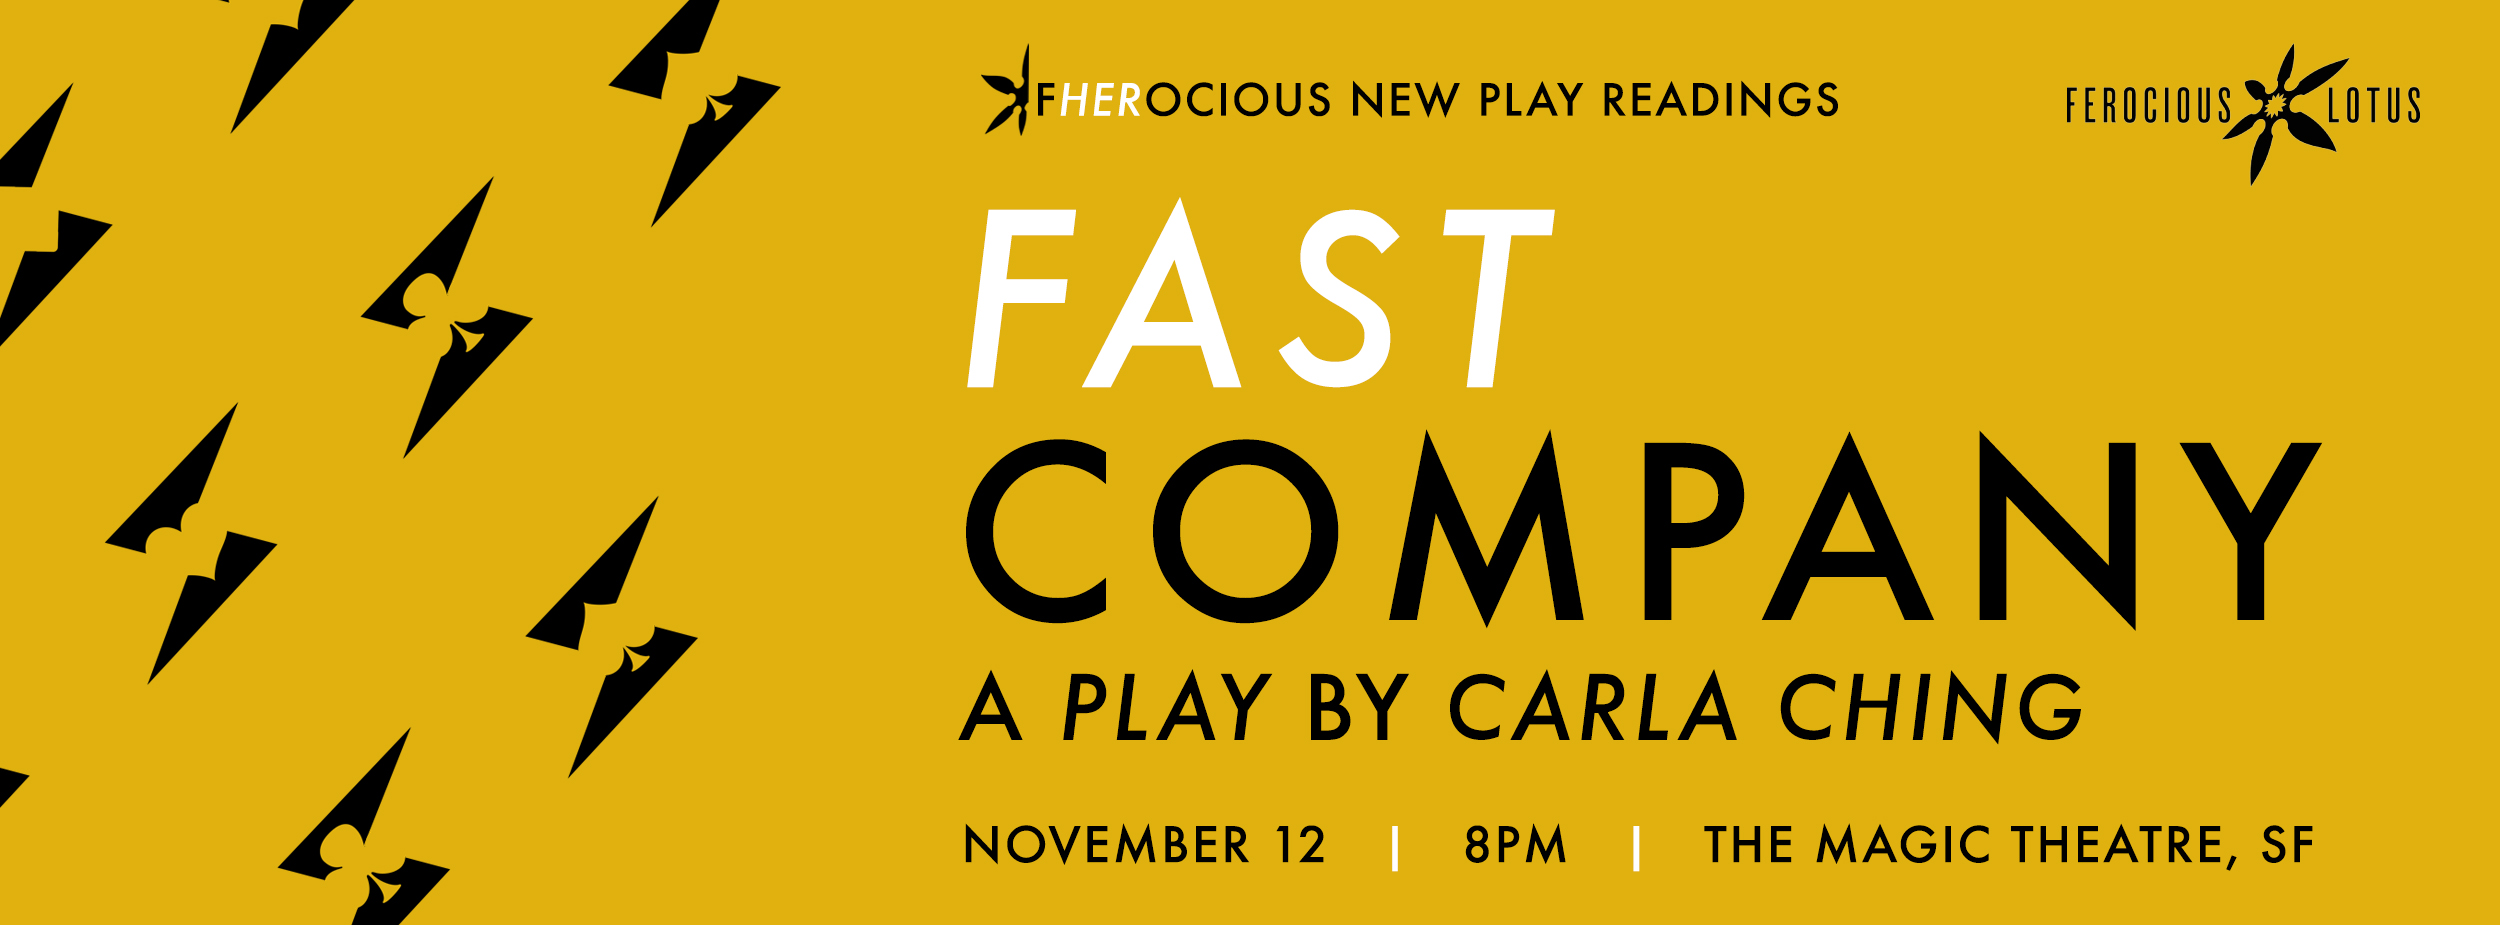 FAST COMPANY , by  Carla Ching    Nov. 12 | Saturday | 8p  Directed by  Keiko Shimosato Carreiro  In this comedy heist, a family of grifters is so busy double-crossing each other that they lose sight of the greatest grifter of them all. Fast, funny, dark and dangerous—this skewed look at family and ambition keeps us guessing about who's winning and who's getting conned.  Featuring Lily Tung Crystal*, Monica Ho, Jomar Tagatac* and Phil Wong.